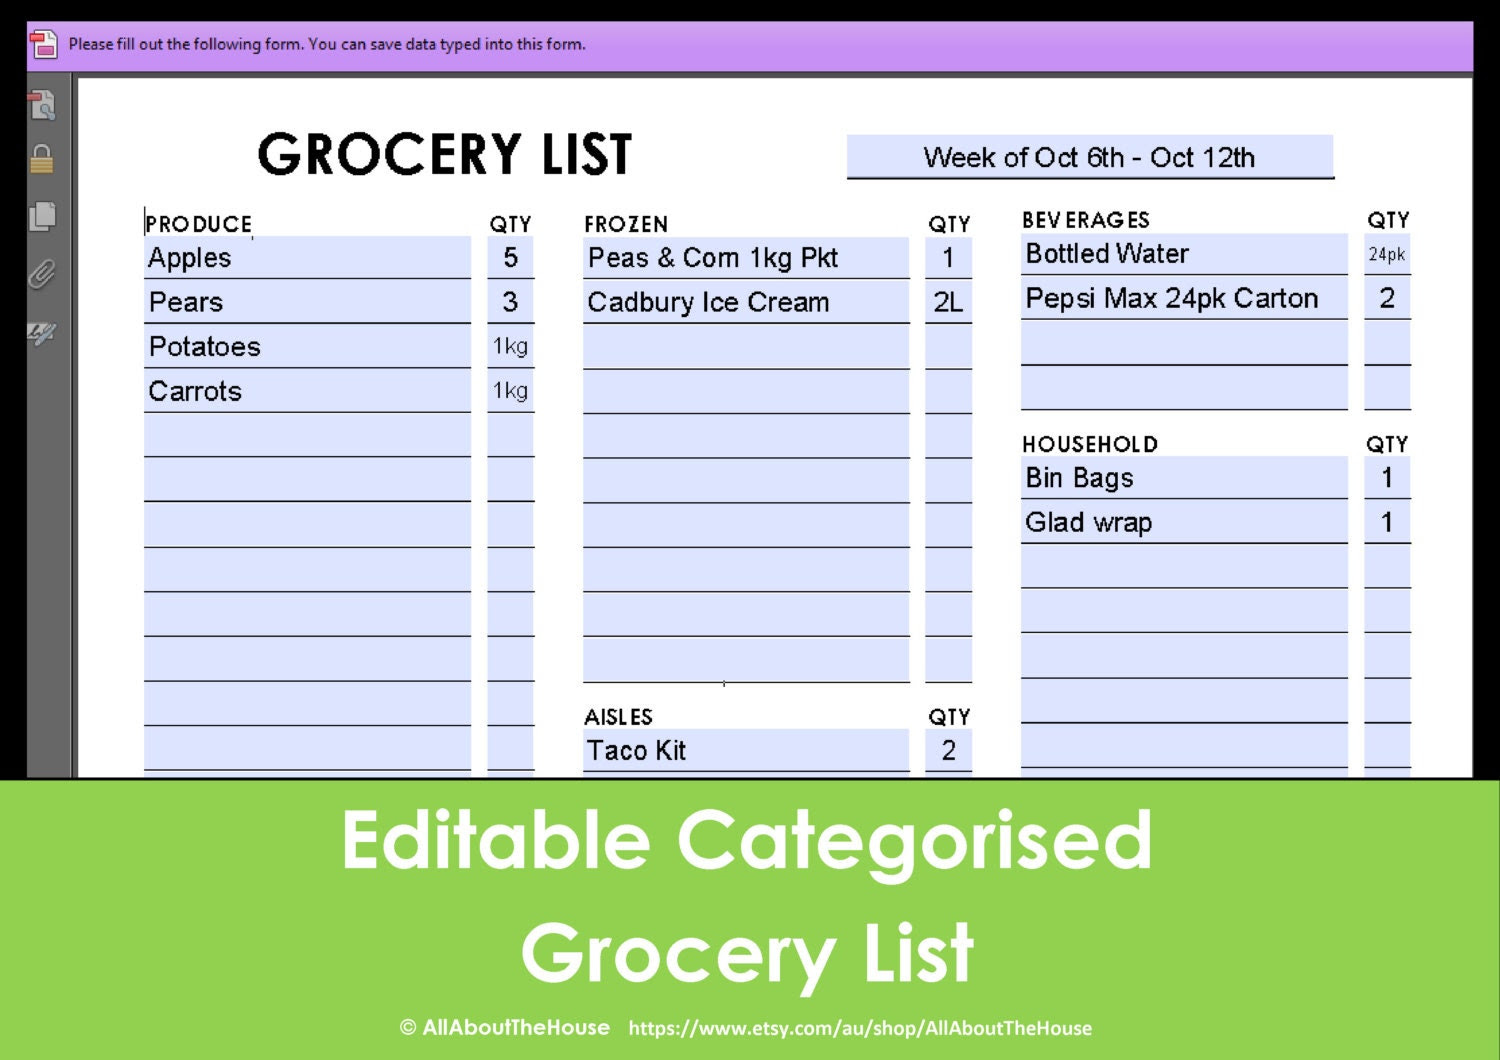 Printable Grocery List Editable Categorised Shopping by ...